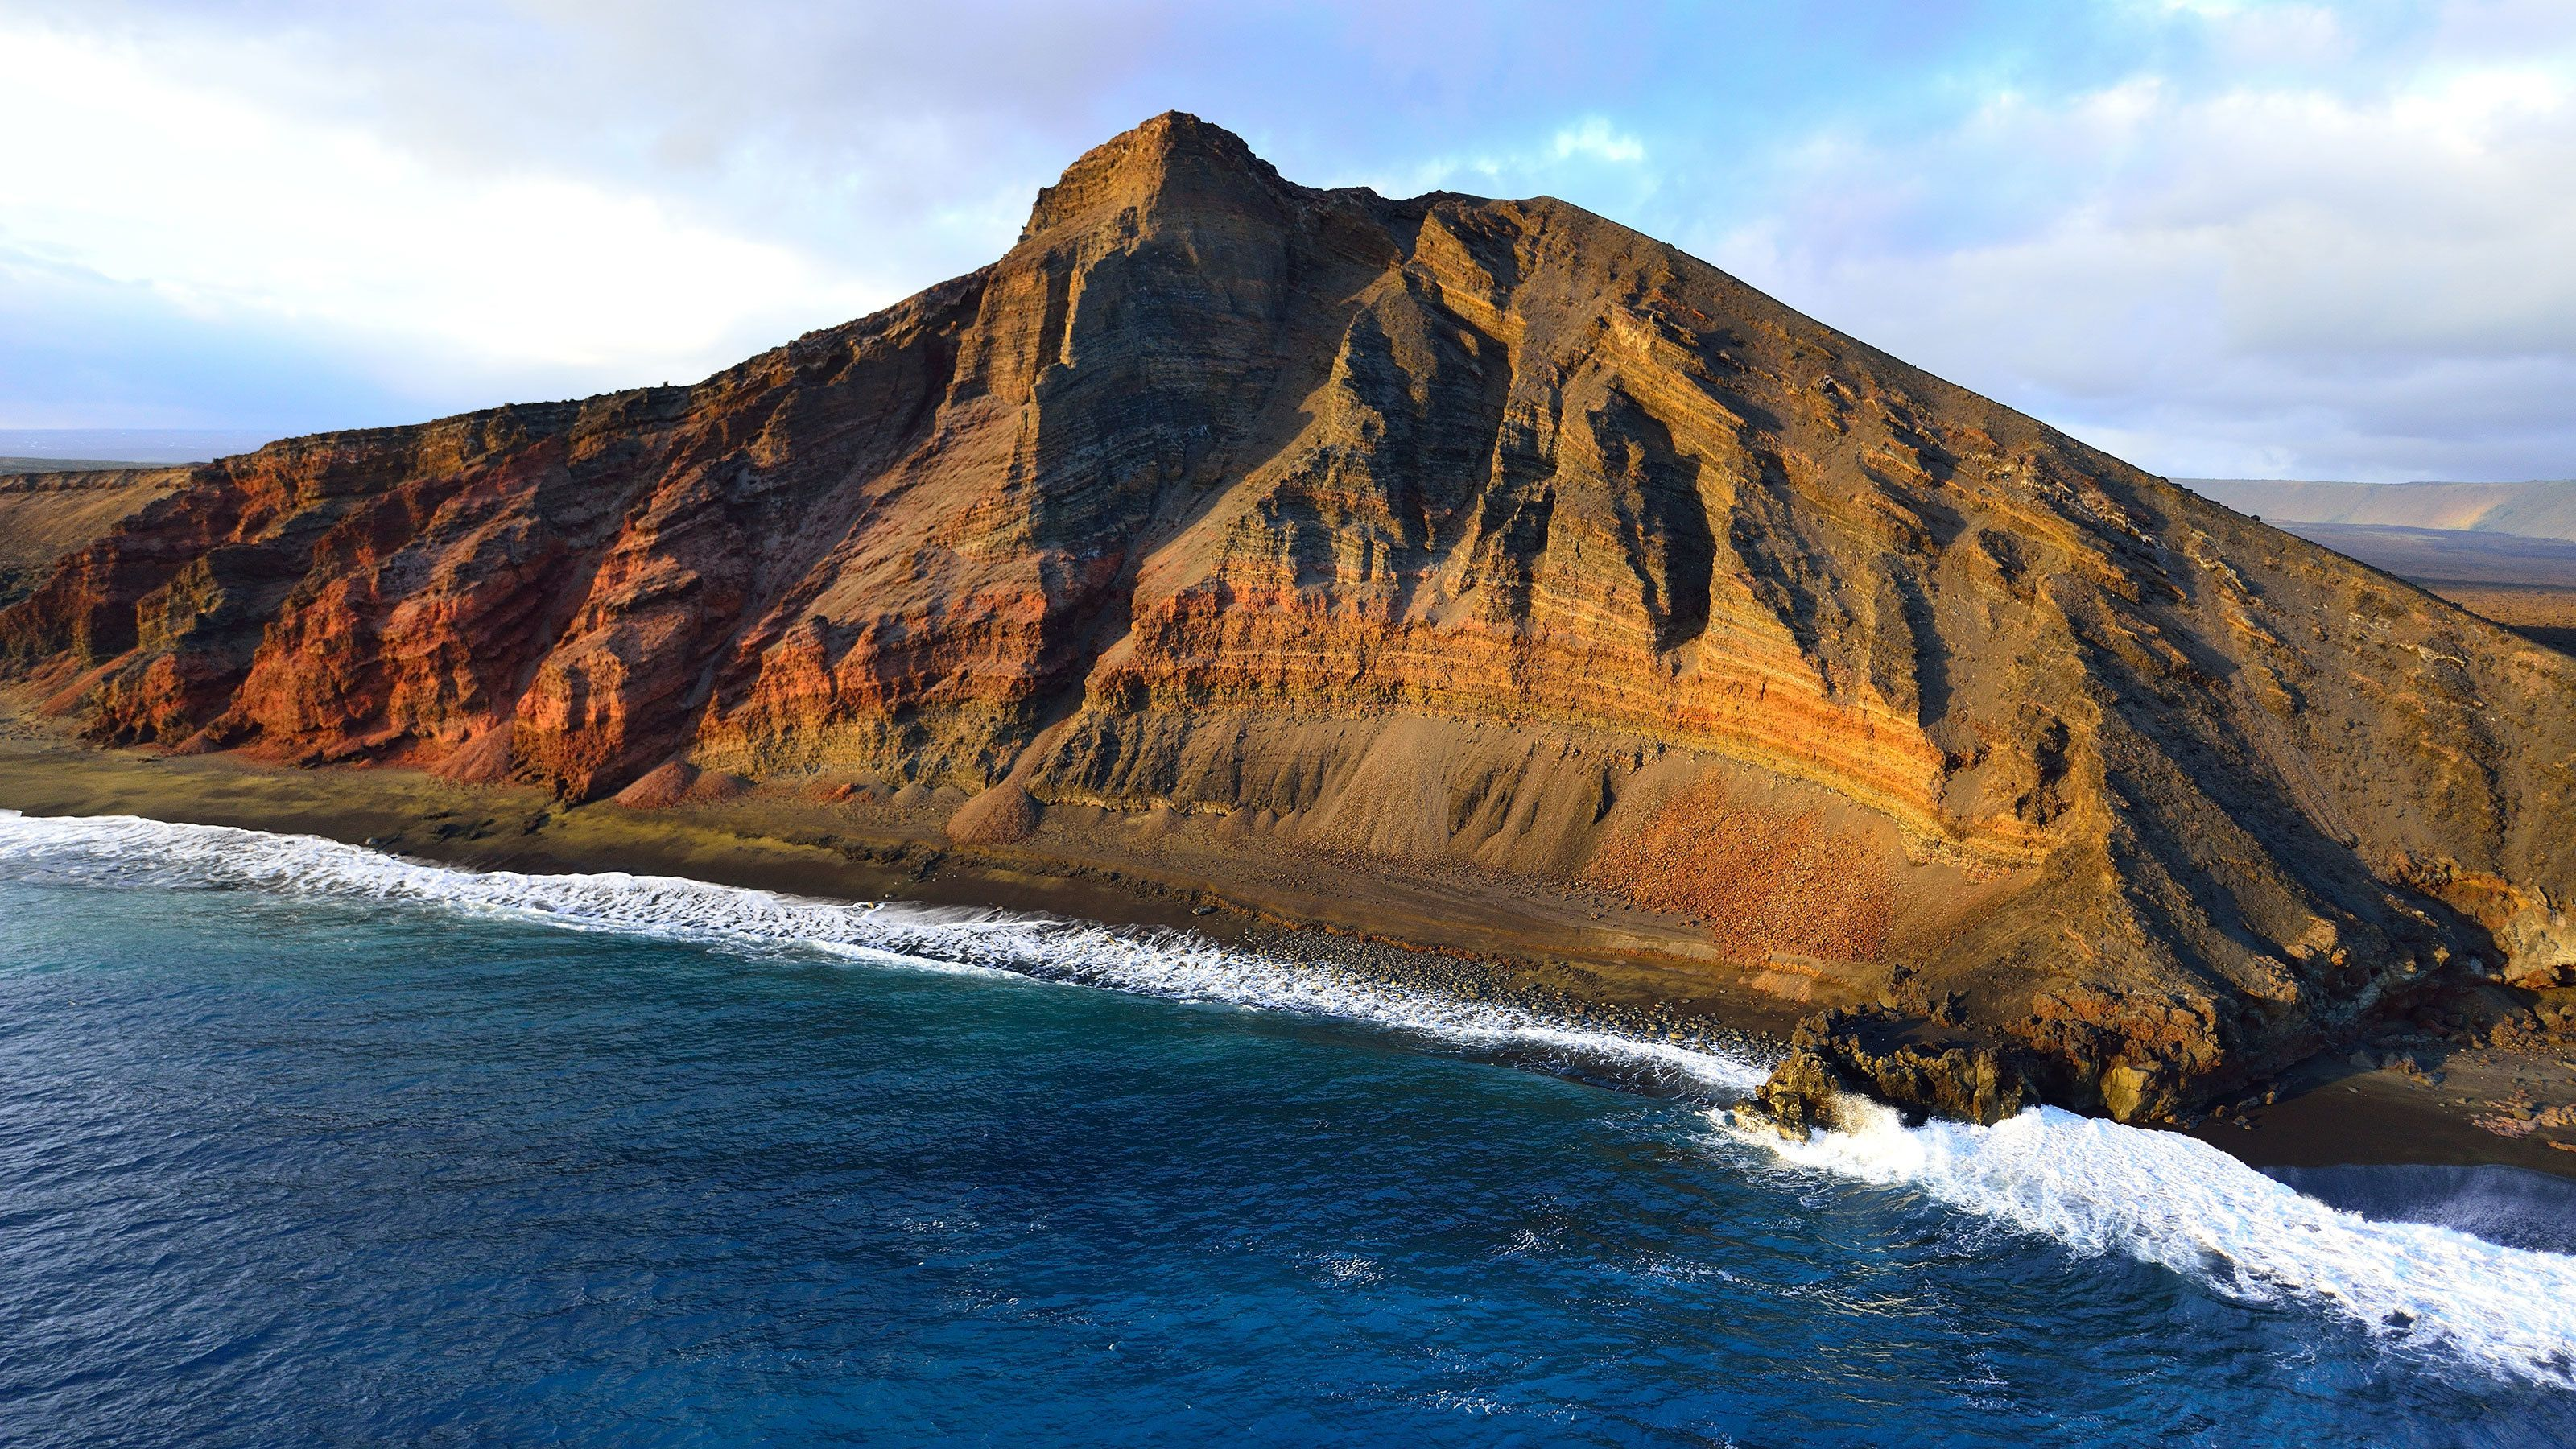 Huge cliff rise near on the shore line in Hawaii